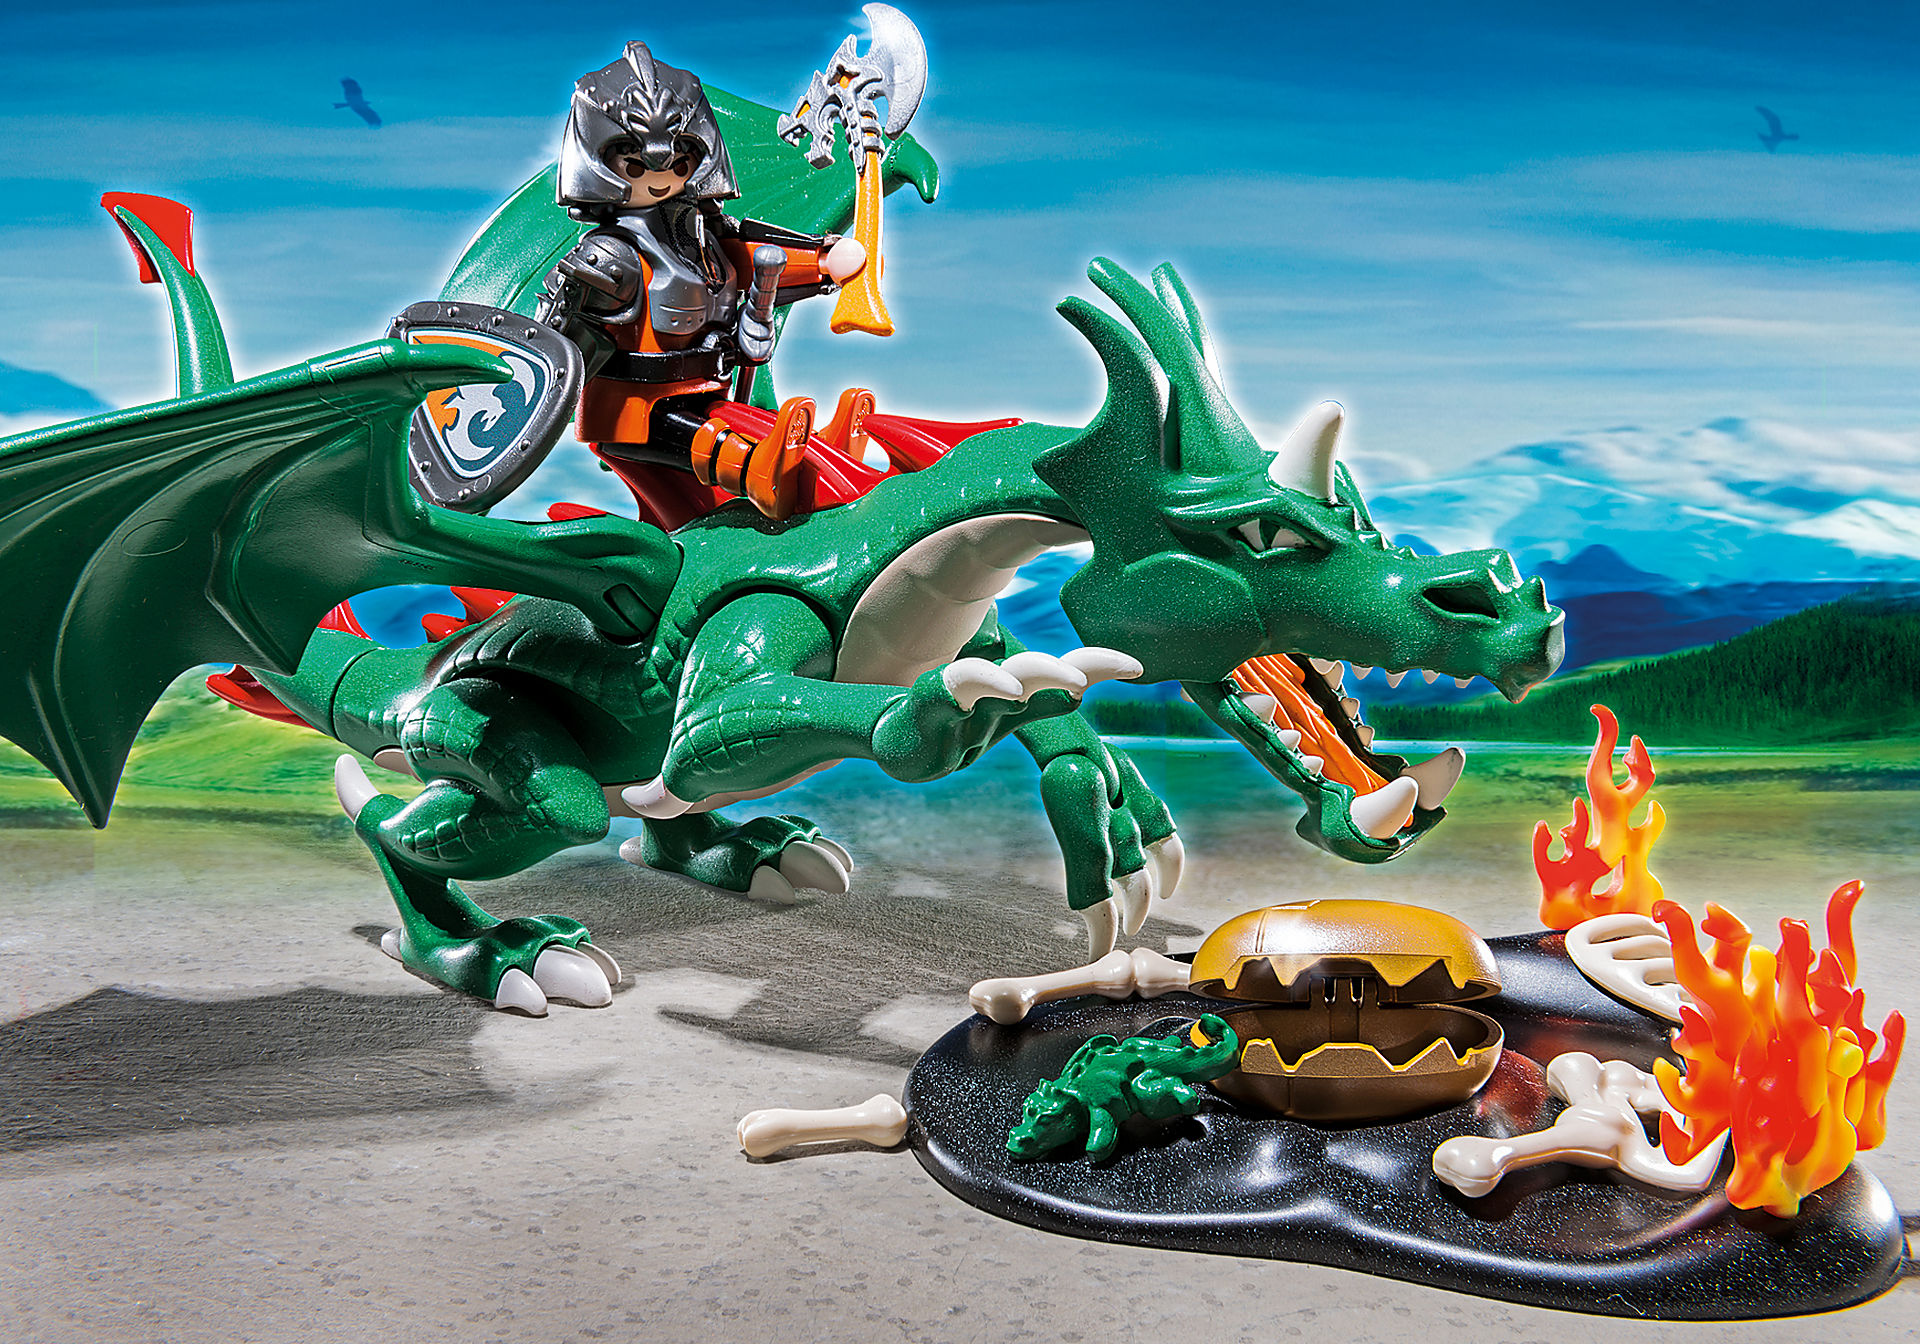 http://media.playmobil.com/i/playmobil/6003_product_extra1/Großer Burgdrache